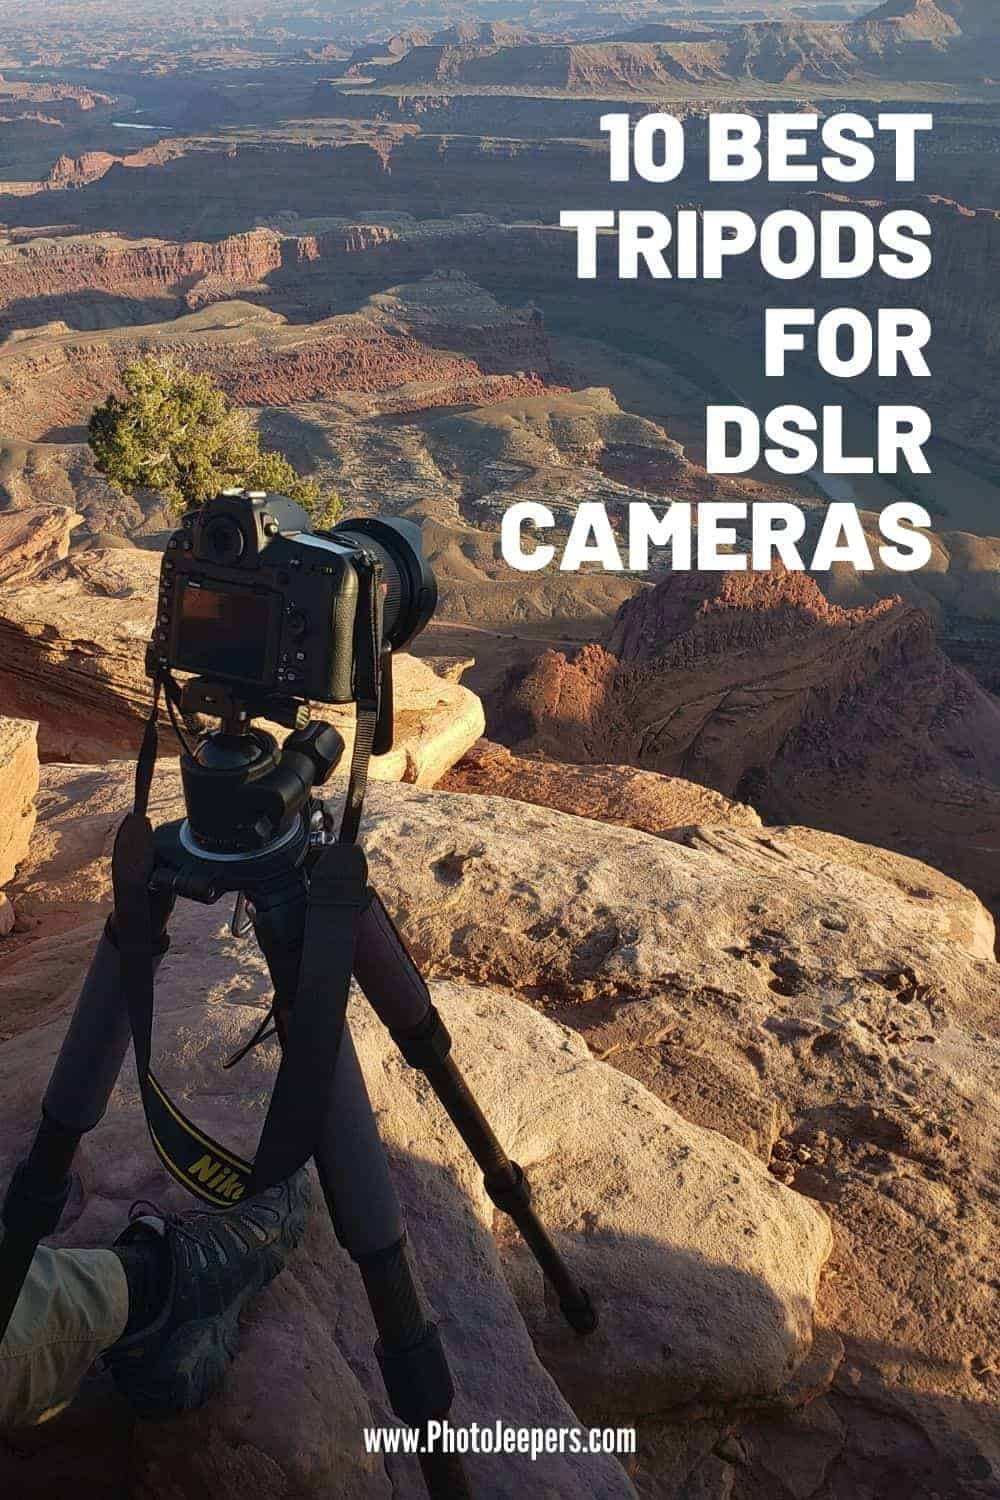 Are you looking for the best tripod for heavy lenses and DSLR cameras? In this guide, we have featured the top 10 sturdy tripods to buy, for all budgets! #photography #cameragear #tripod #photojeepers